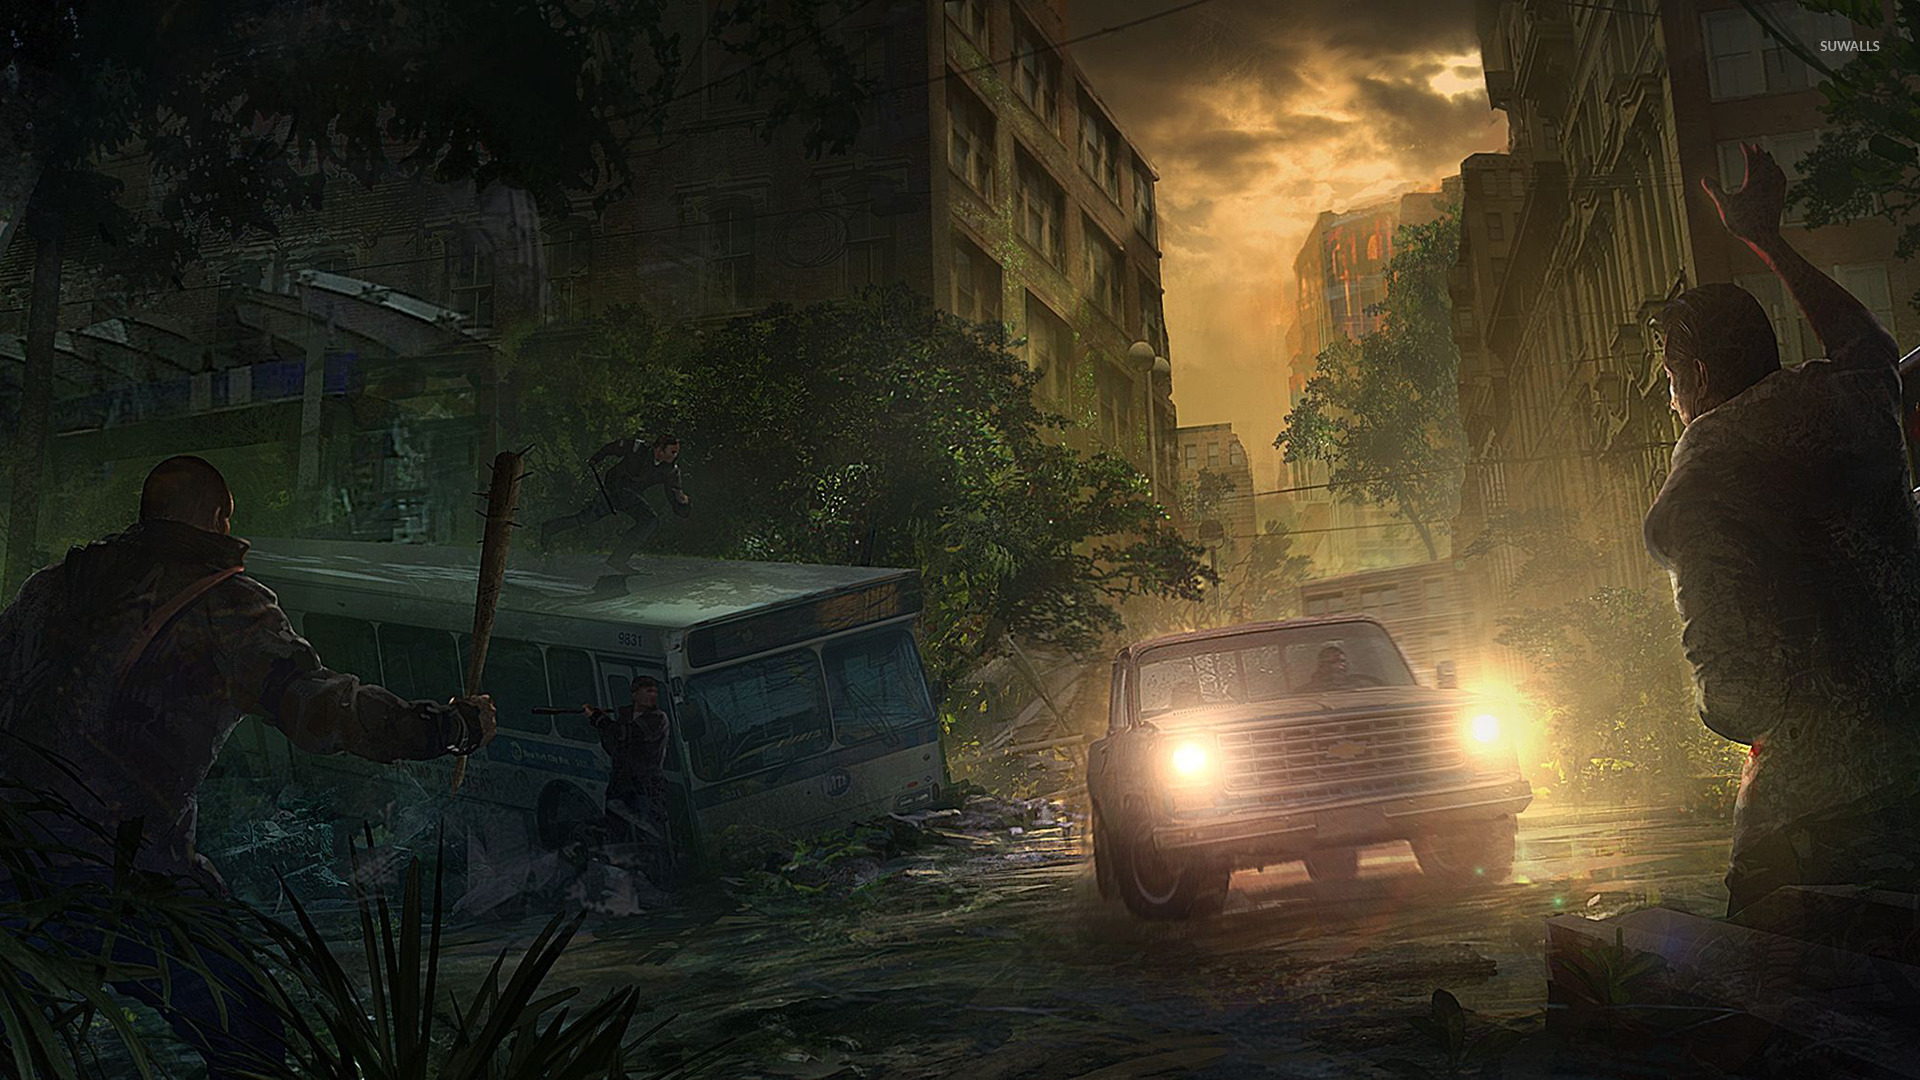 The Last of Us [10] wallpaper - Game wallpapers - #41675